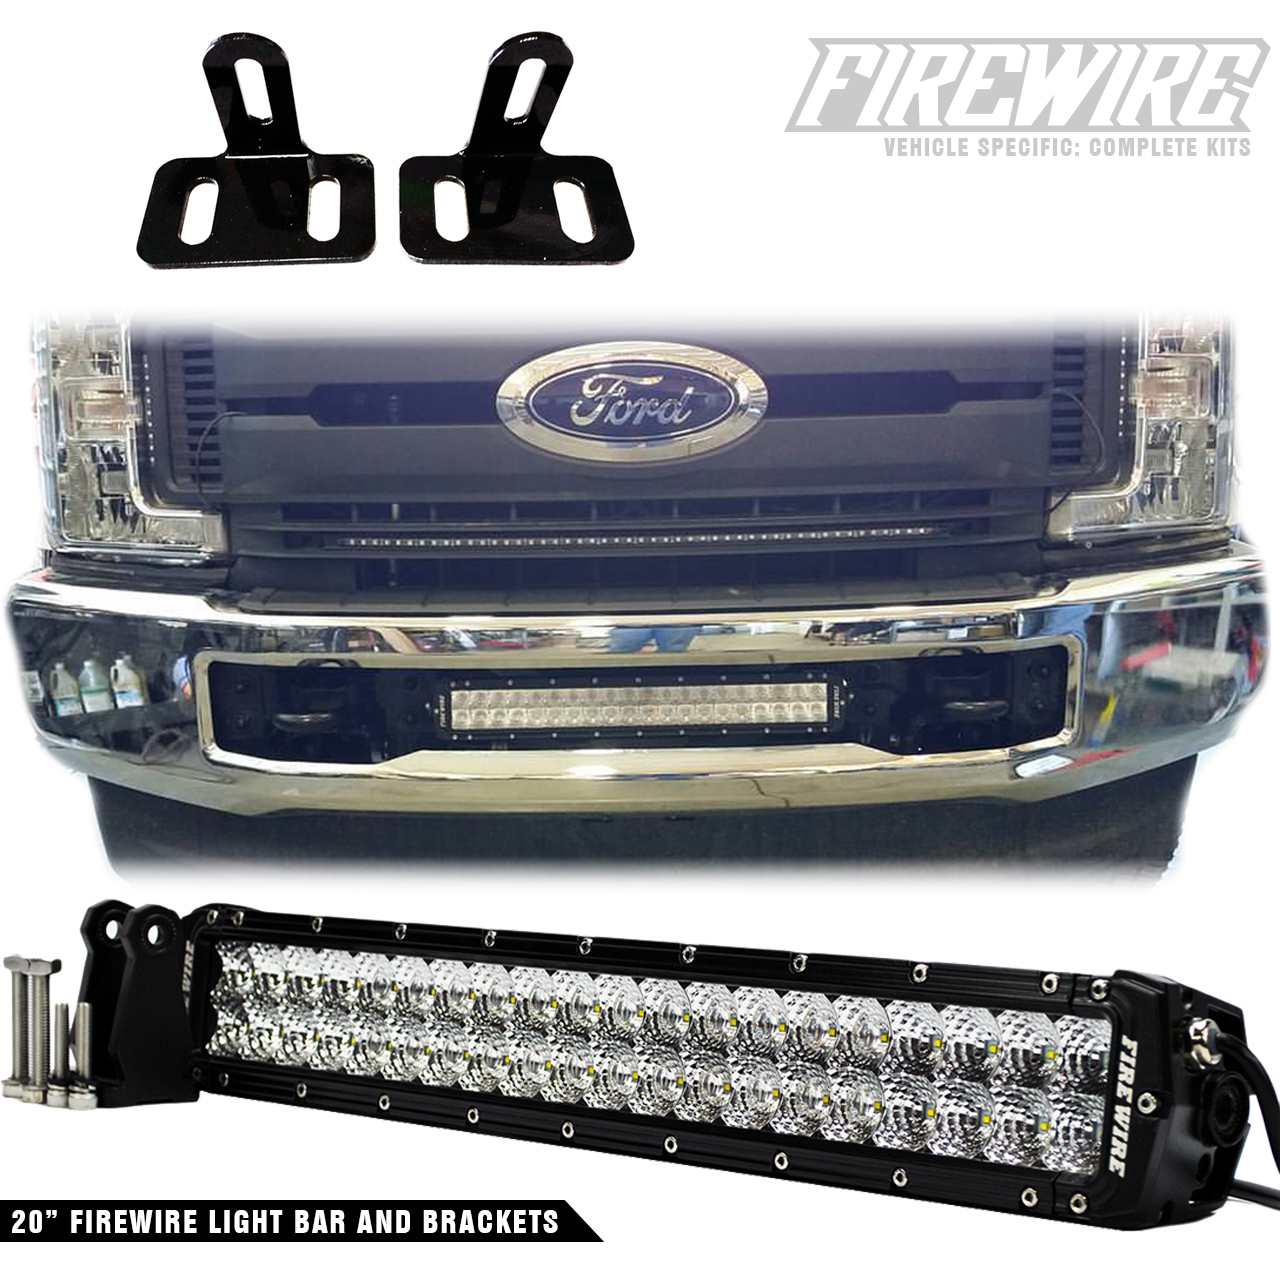 2017 Ford Super Duty Bumper Light Bar Kit Firewire Leds